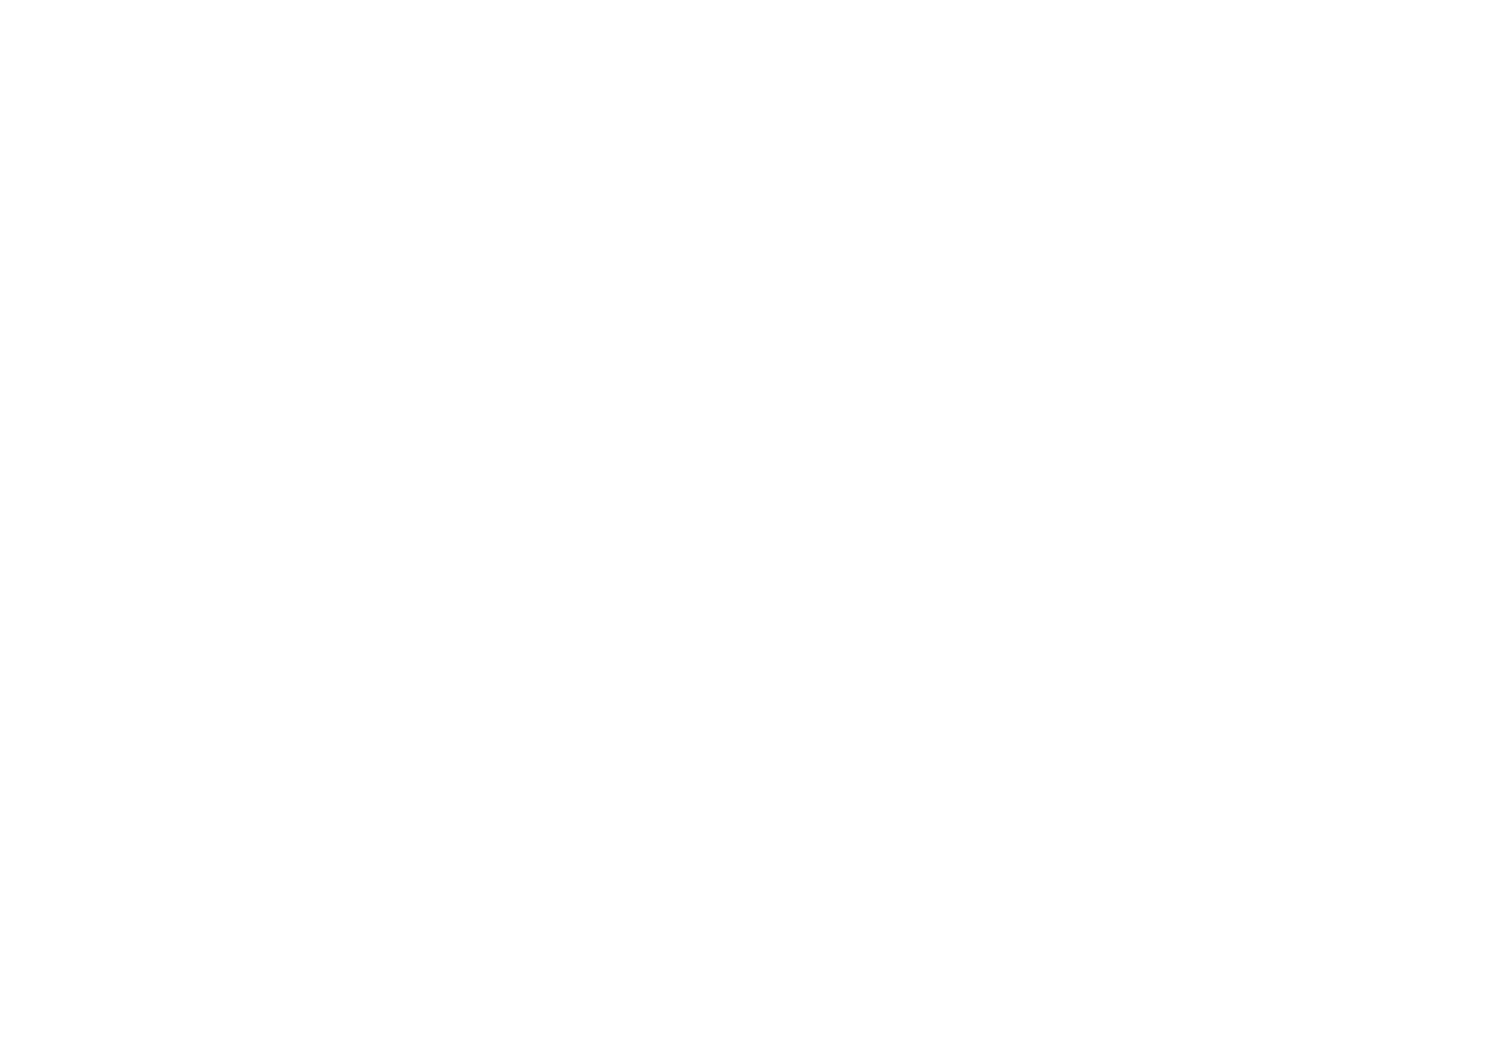 RAPID SURF LEAGUE